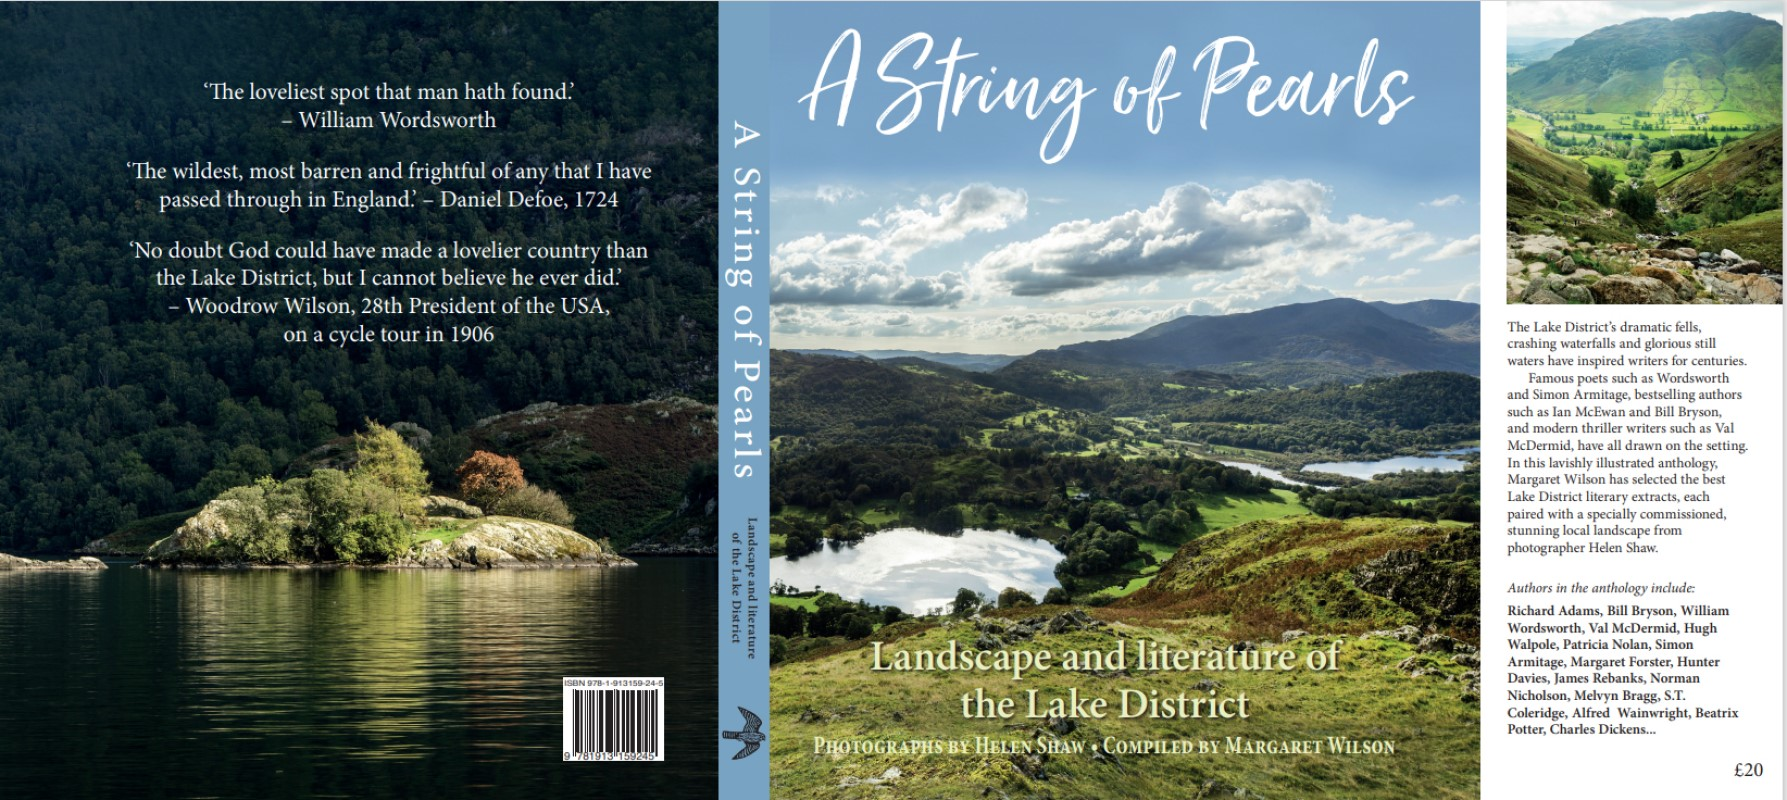 Helen Shaw, Ribble Valley, Lancashire, UK, Literature